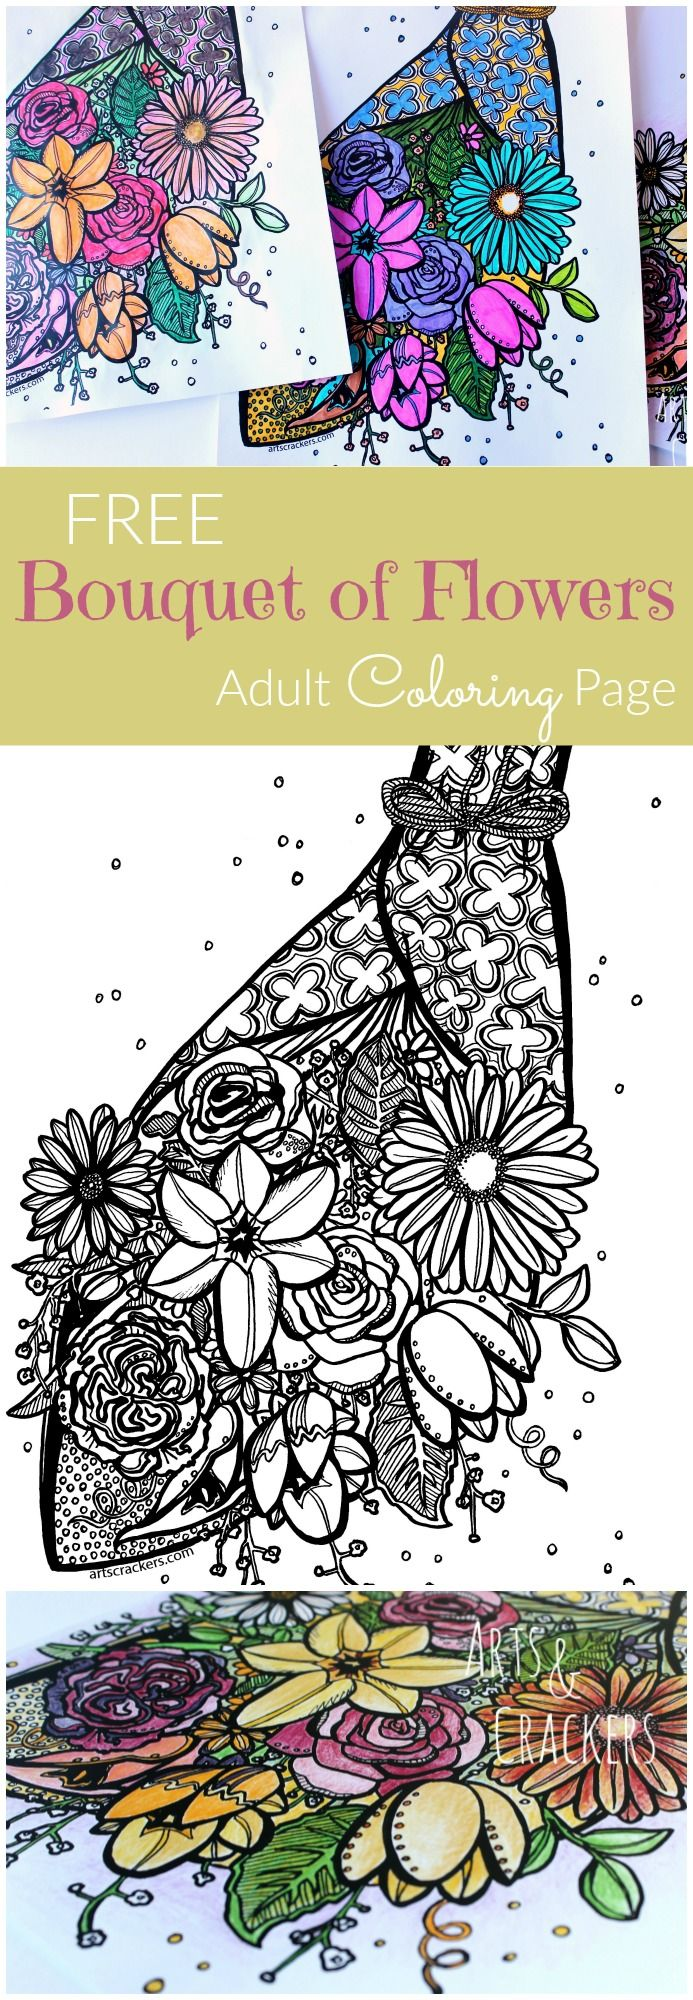 Coloring book michaels - Free Bouquet Adult Coloring Page